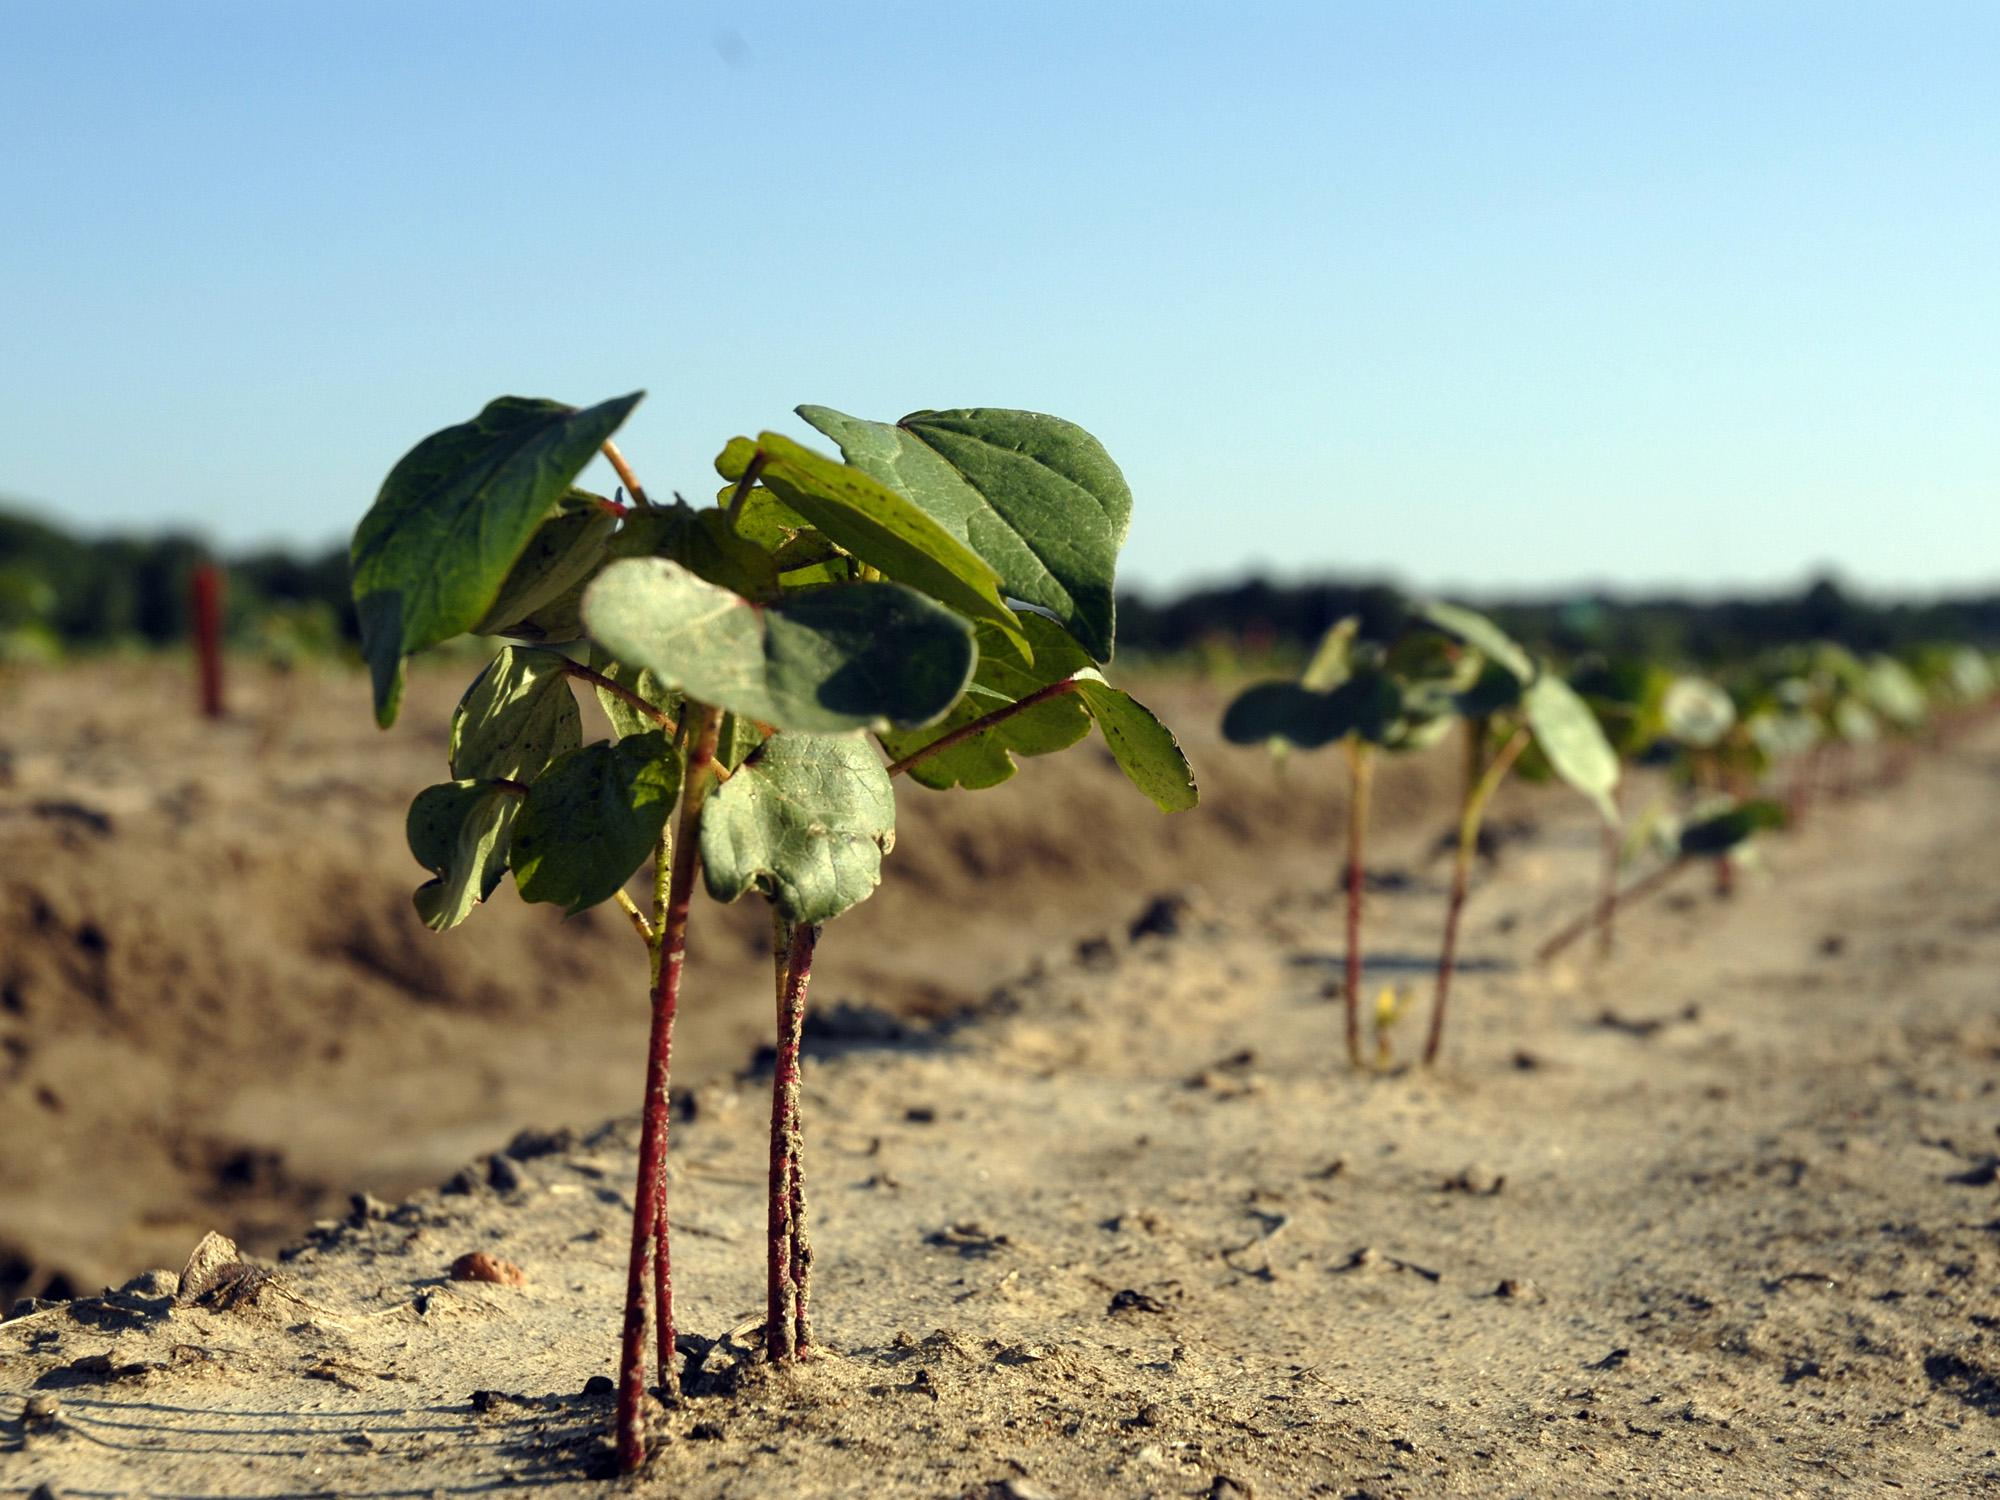 A week without rain in early May gave Mississippi producers a chance to catch up with spring planting. This cotton on Mississippi State University's R.R. Foil Plant Science Research Center was planted before the late-April rains. (Photo by MSU Ag Communications/Bonnie Coblentz)